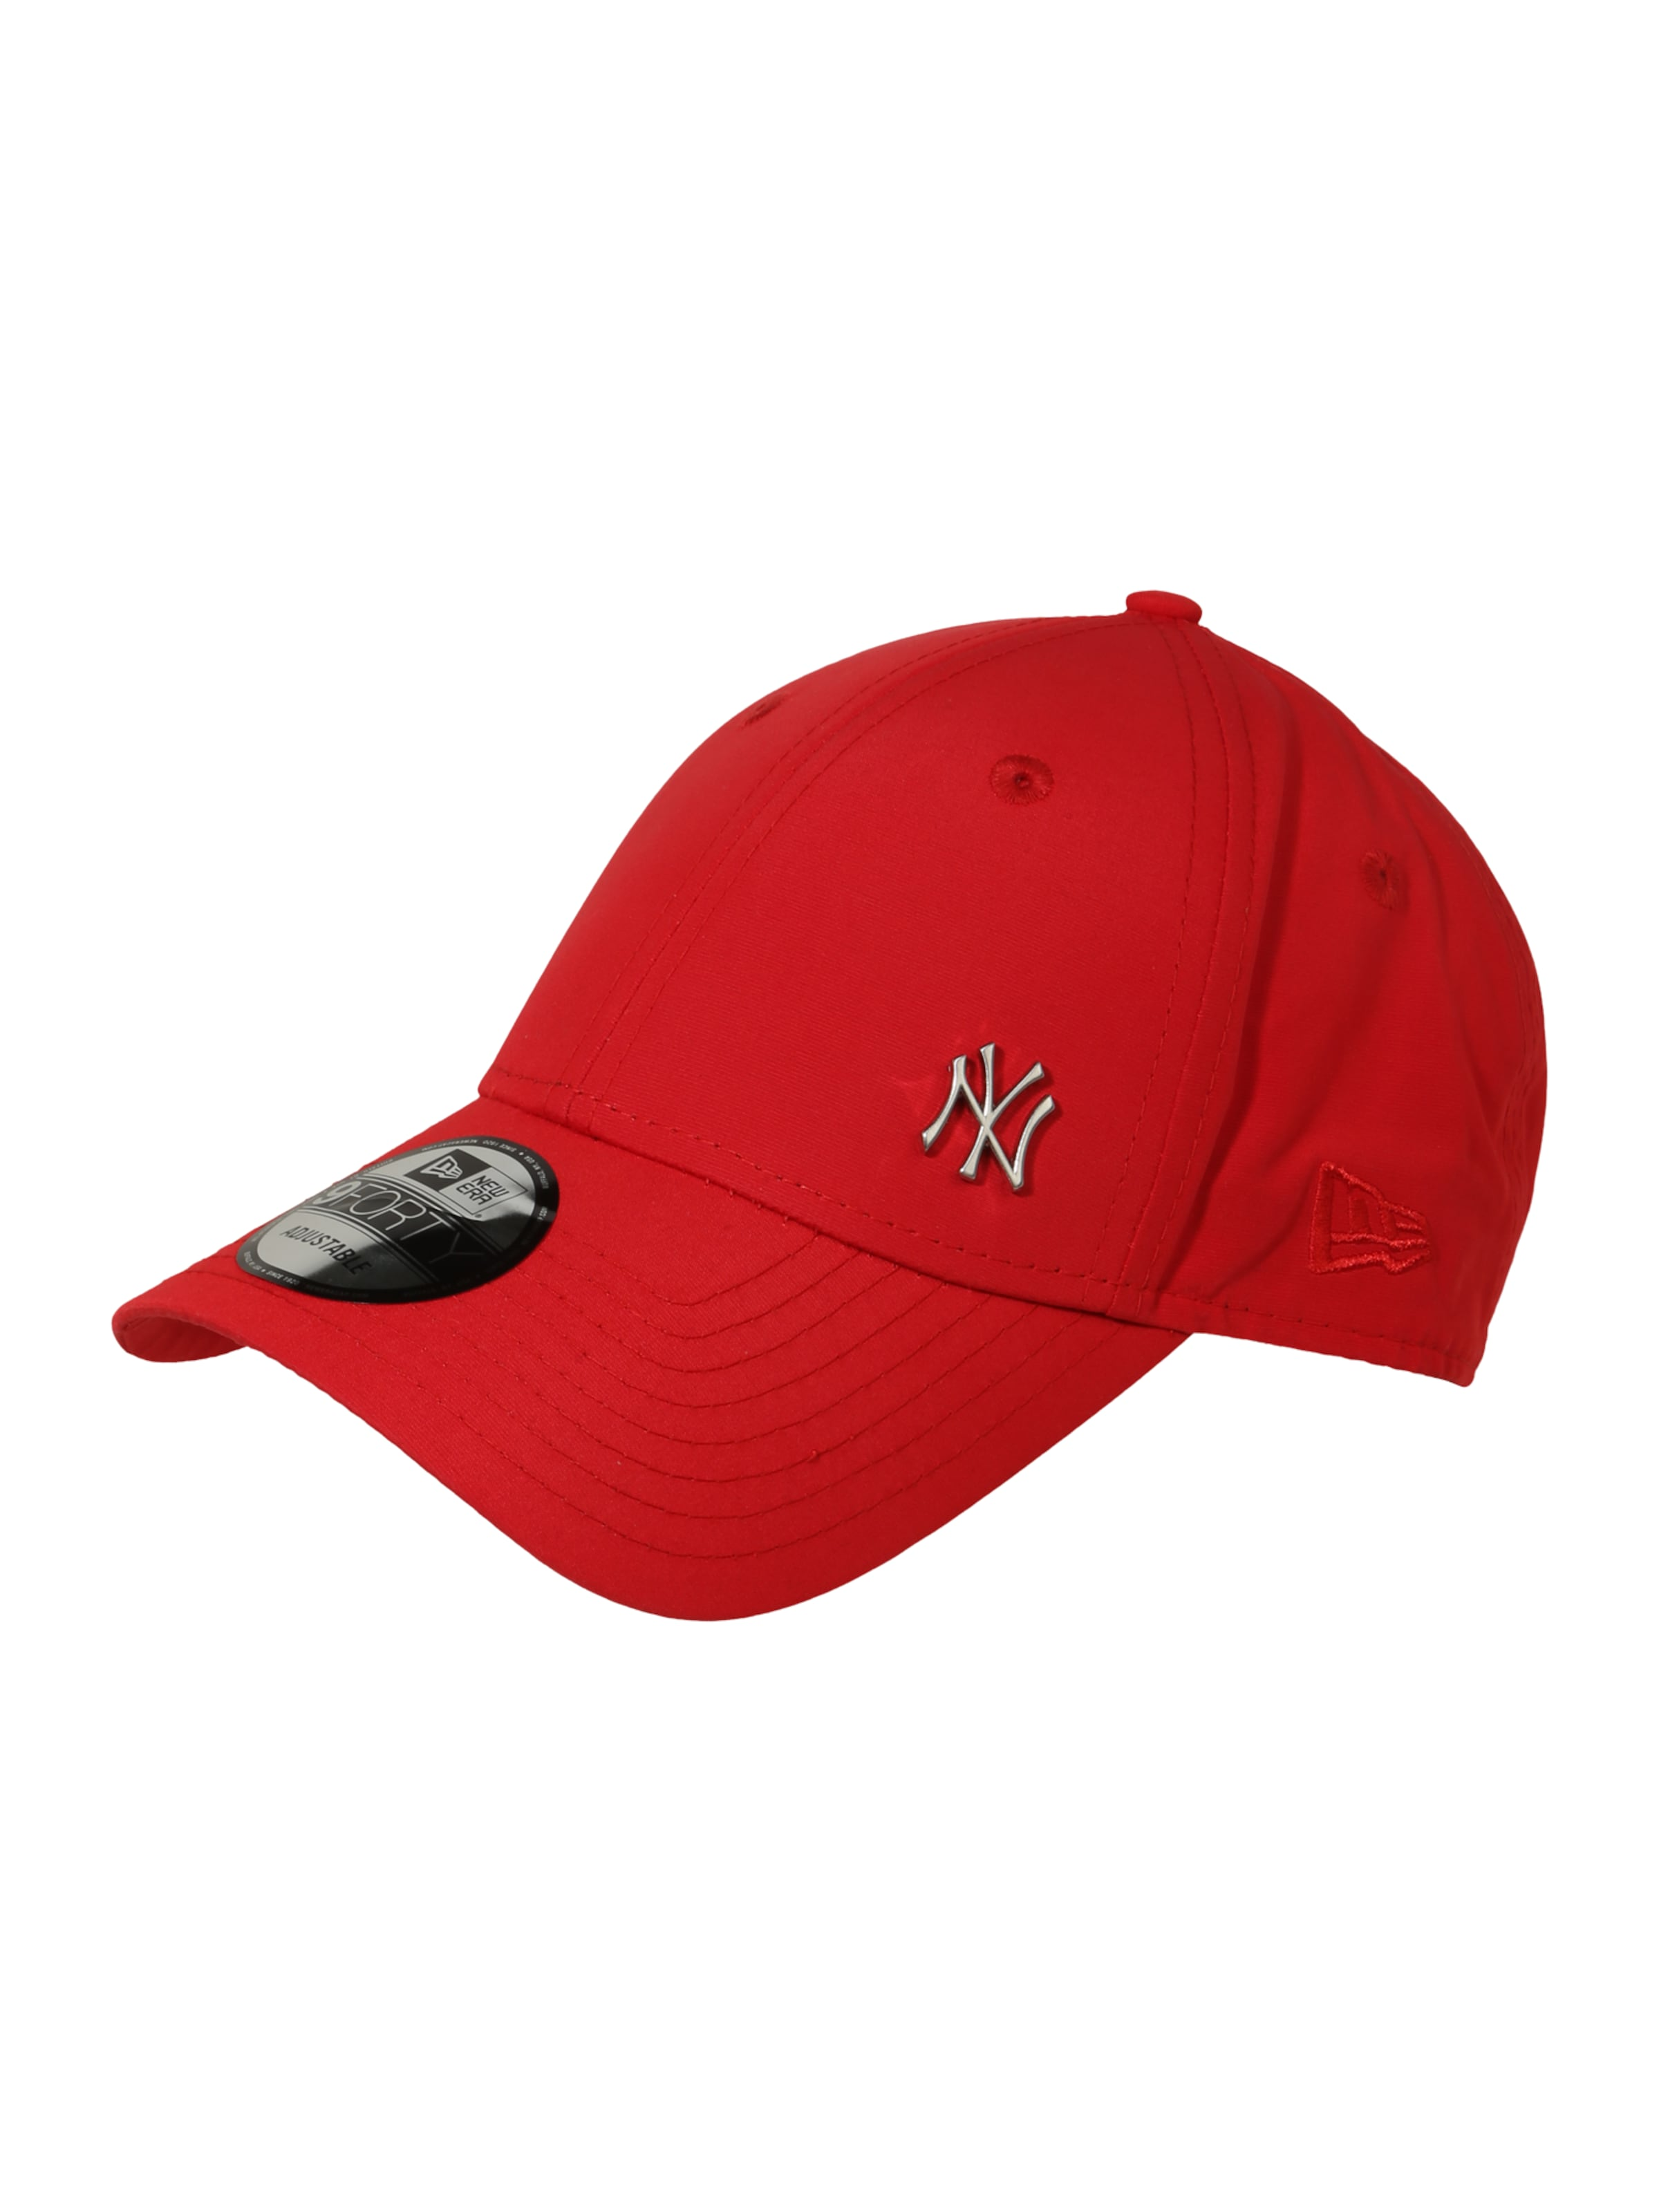 NEW ERA Cap '9FORTY Flawless Logo Metall New York Yankees' Outlet-Store Günstiger Preis Freies Verschiffen Der Offizielle Website Verkauf Heißen Verkauf Kostengünstig SbEACemWS5